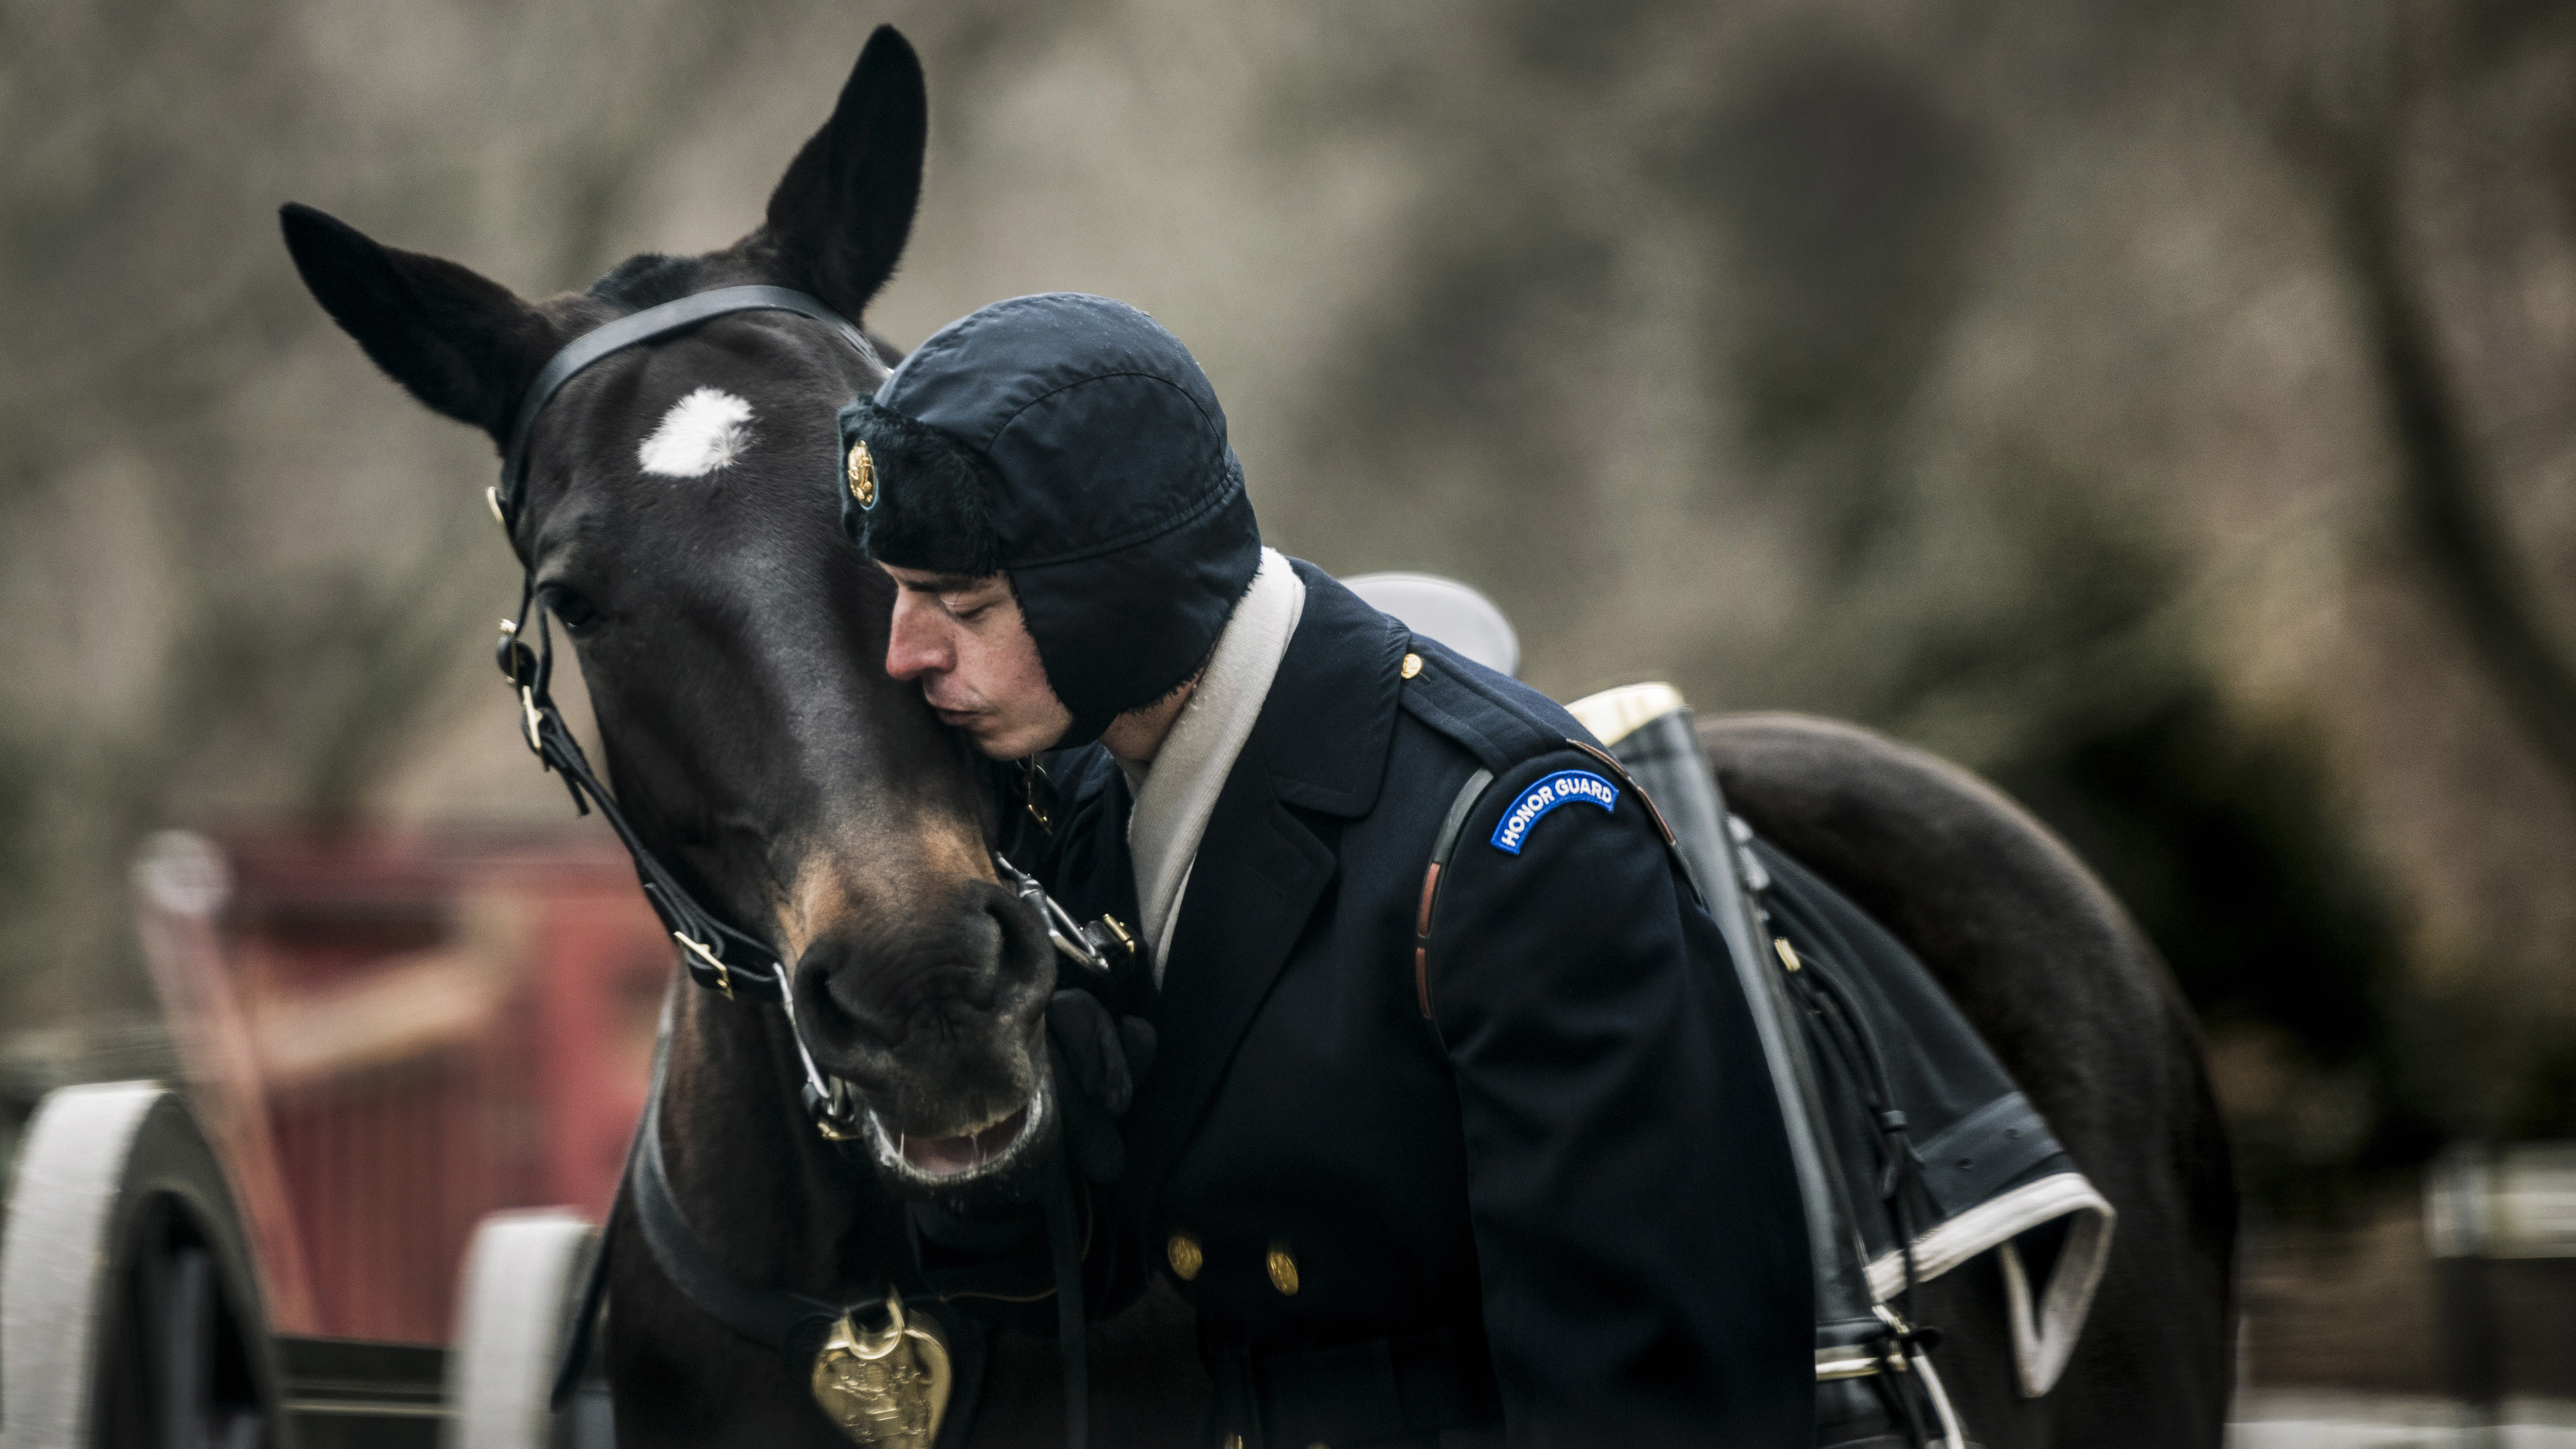 Spc. Colin Martin, 3d U.S. Infantry Regiment (Old Guard) gives a kiss to Hank, an 11 years old Caisson Platoon horse, before conducting funeral training at Arlington National Cemetery, Arlington, Virginia, Feb. 6, 2018. (Elizabeth Fraser/ Arlington National Cemetery)